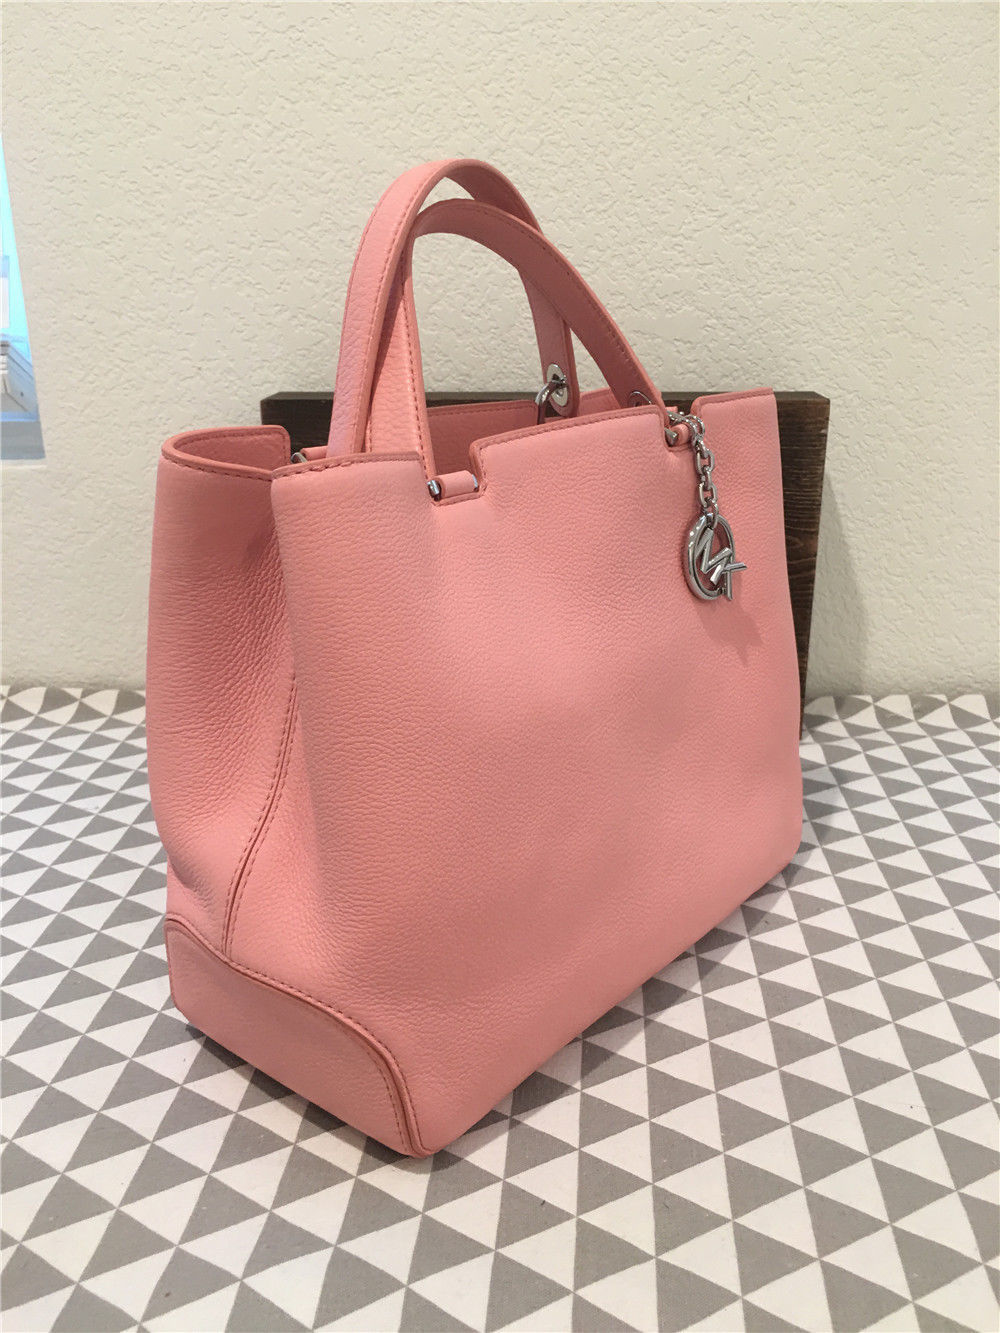 a76e20ff698e MICHAEL Michael Kors Anabelle Large Leather Tote in Pale Pink 30s6sapt3l